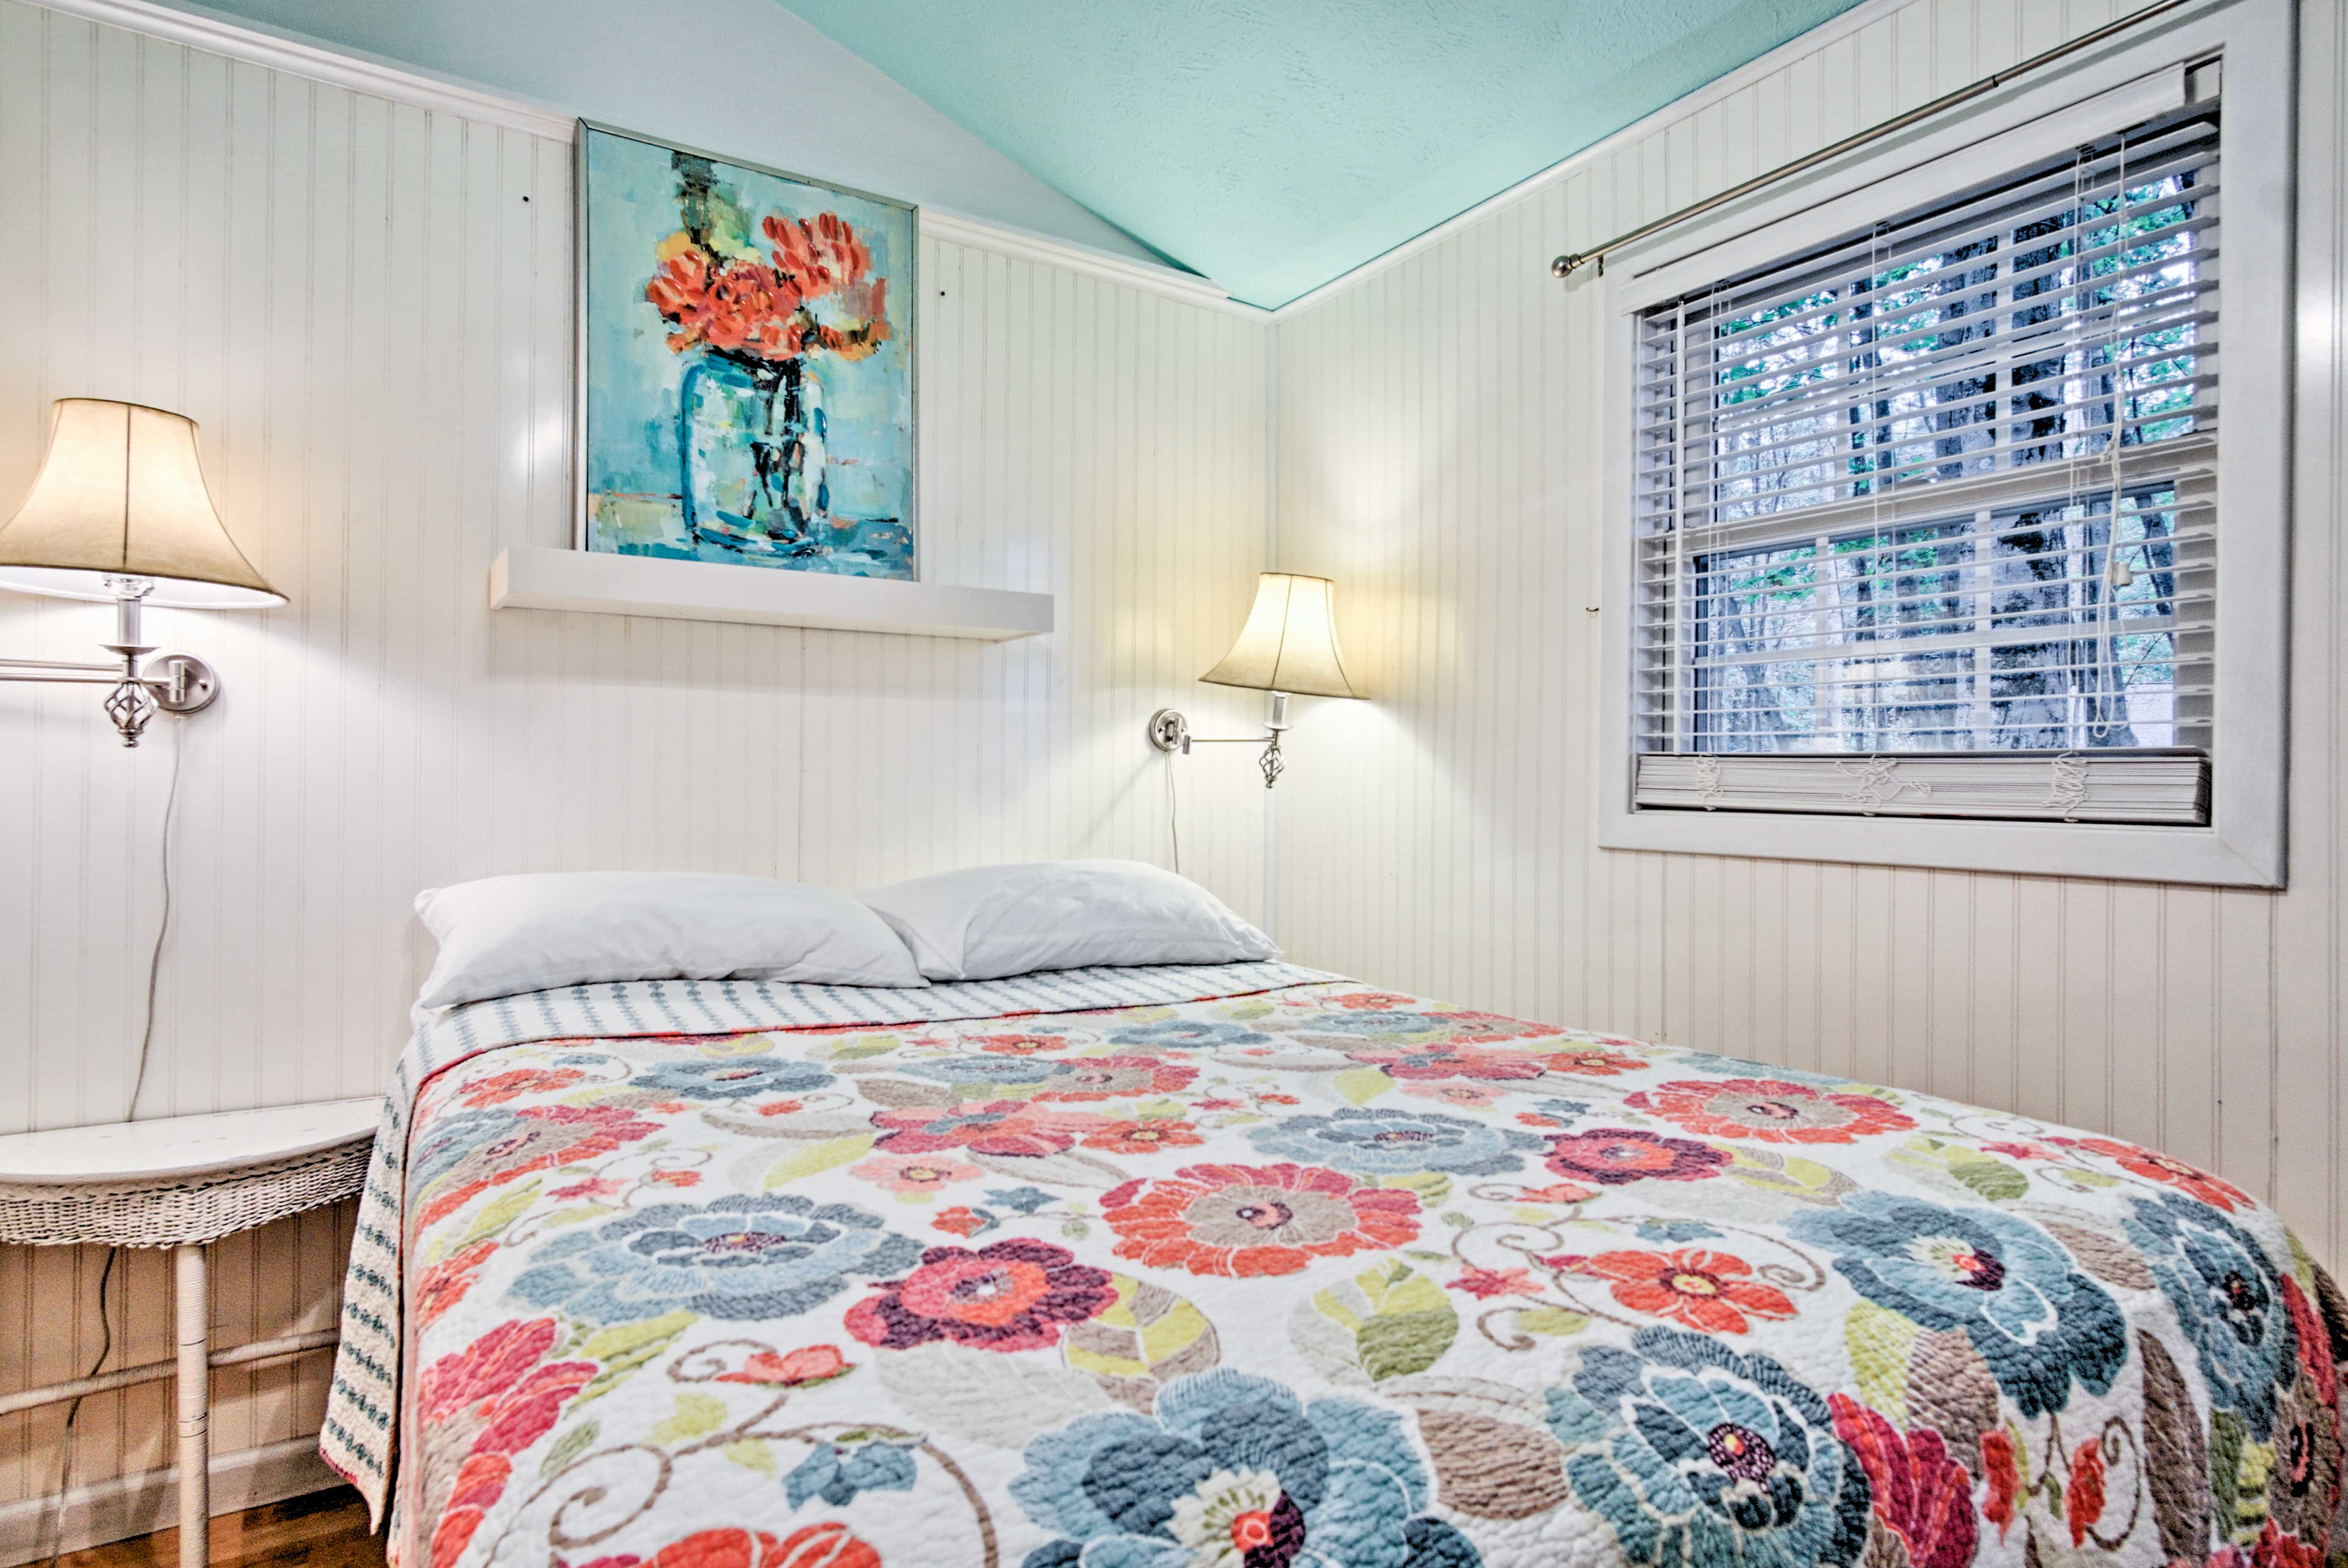 The property accommodates up to 5 guests. Linens are not provided.